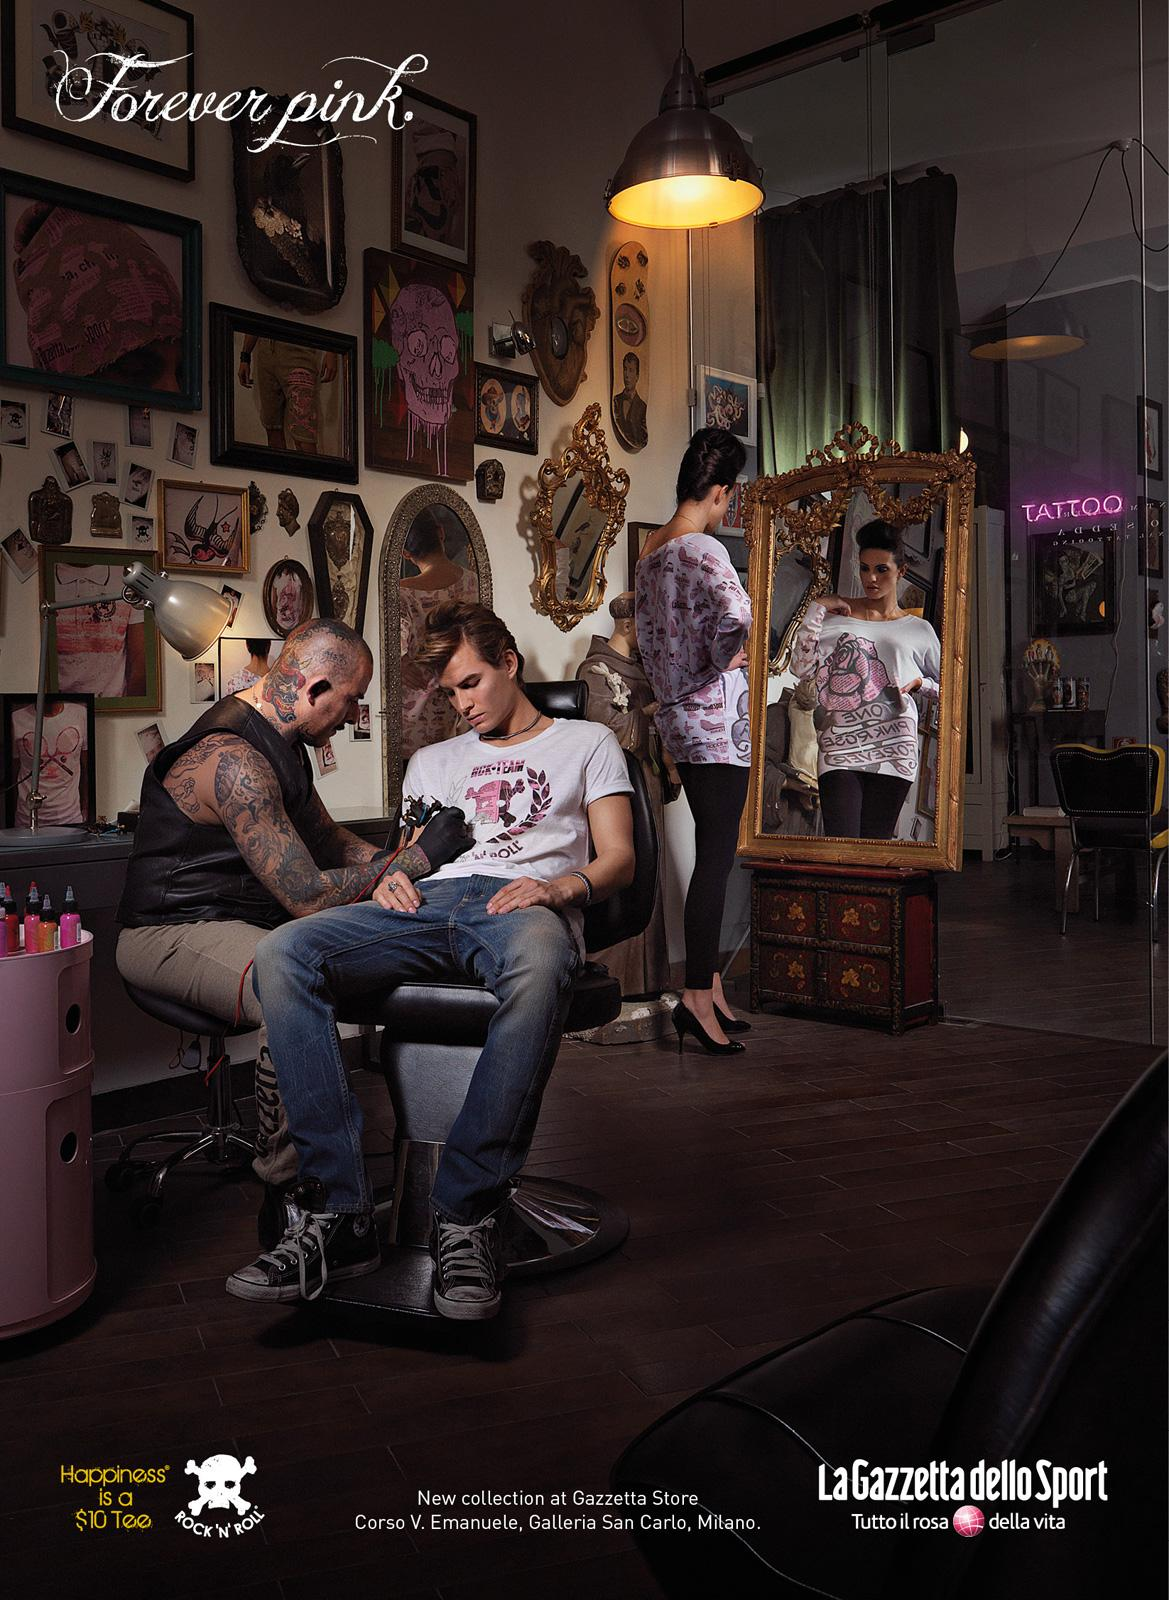 La Gazzetta dello Sport, Happiness is $10 Tee: Forever pink | Ads of the World™